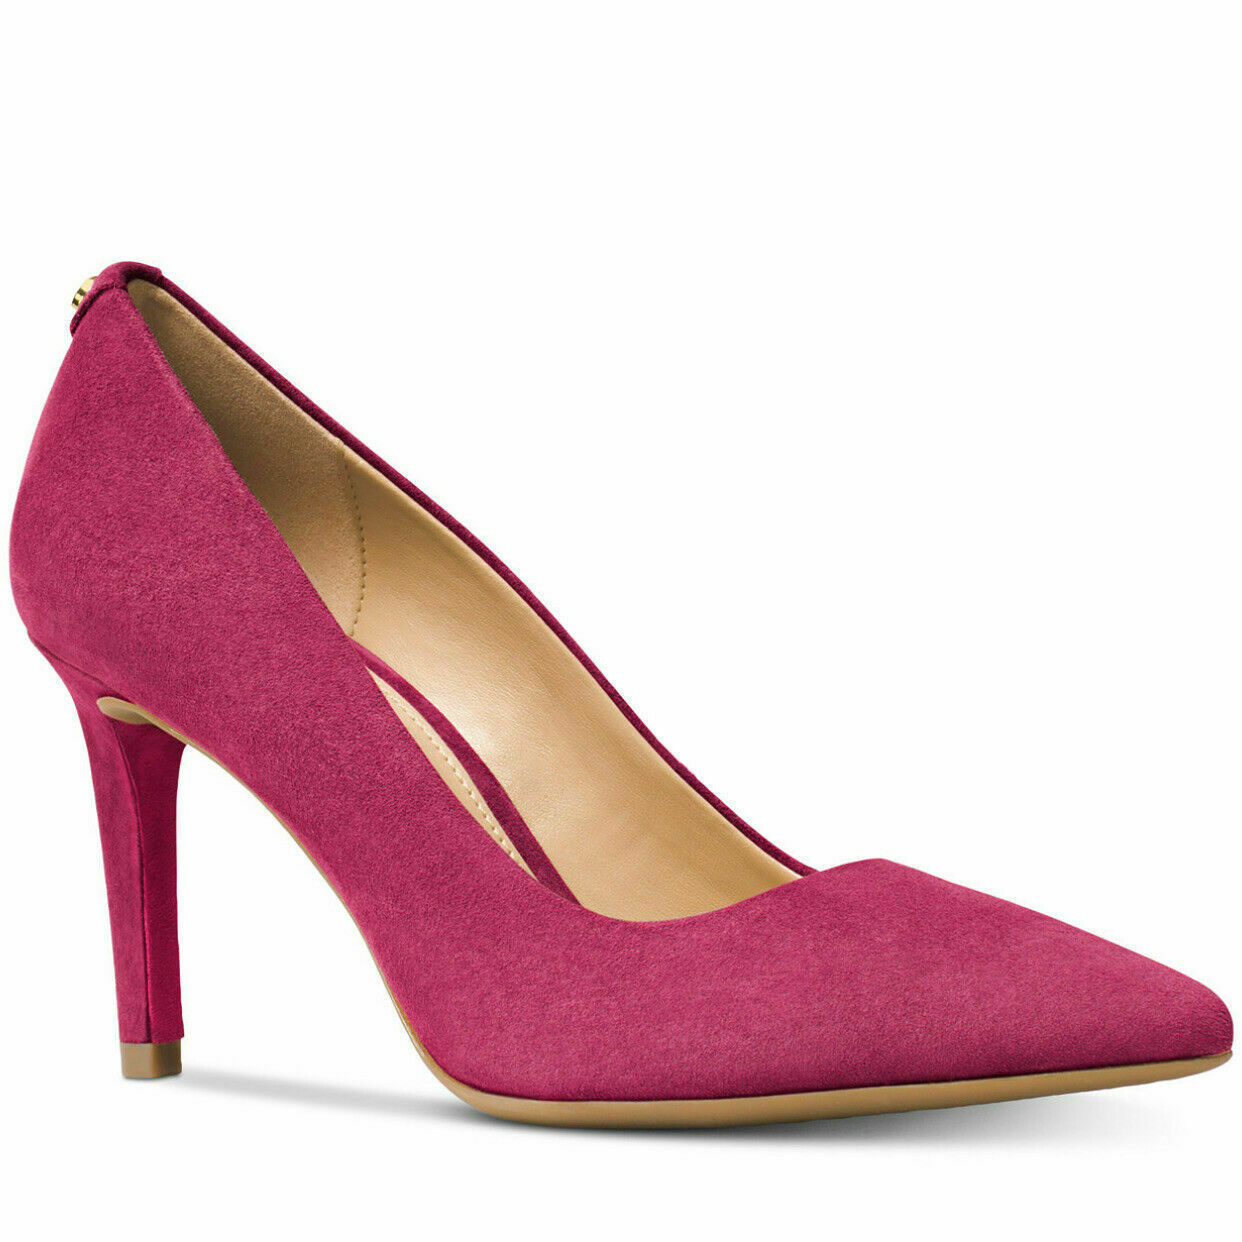 Primary image for Michael Kors Dorothy Lacquer Pink Flex Pump Shoes Size 6.5